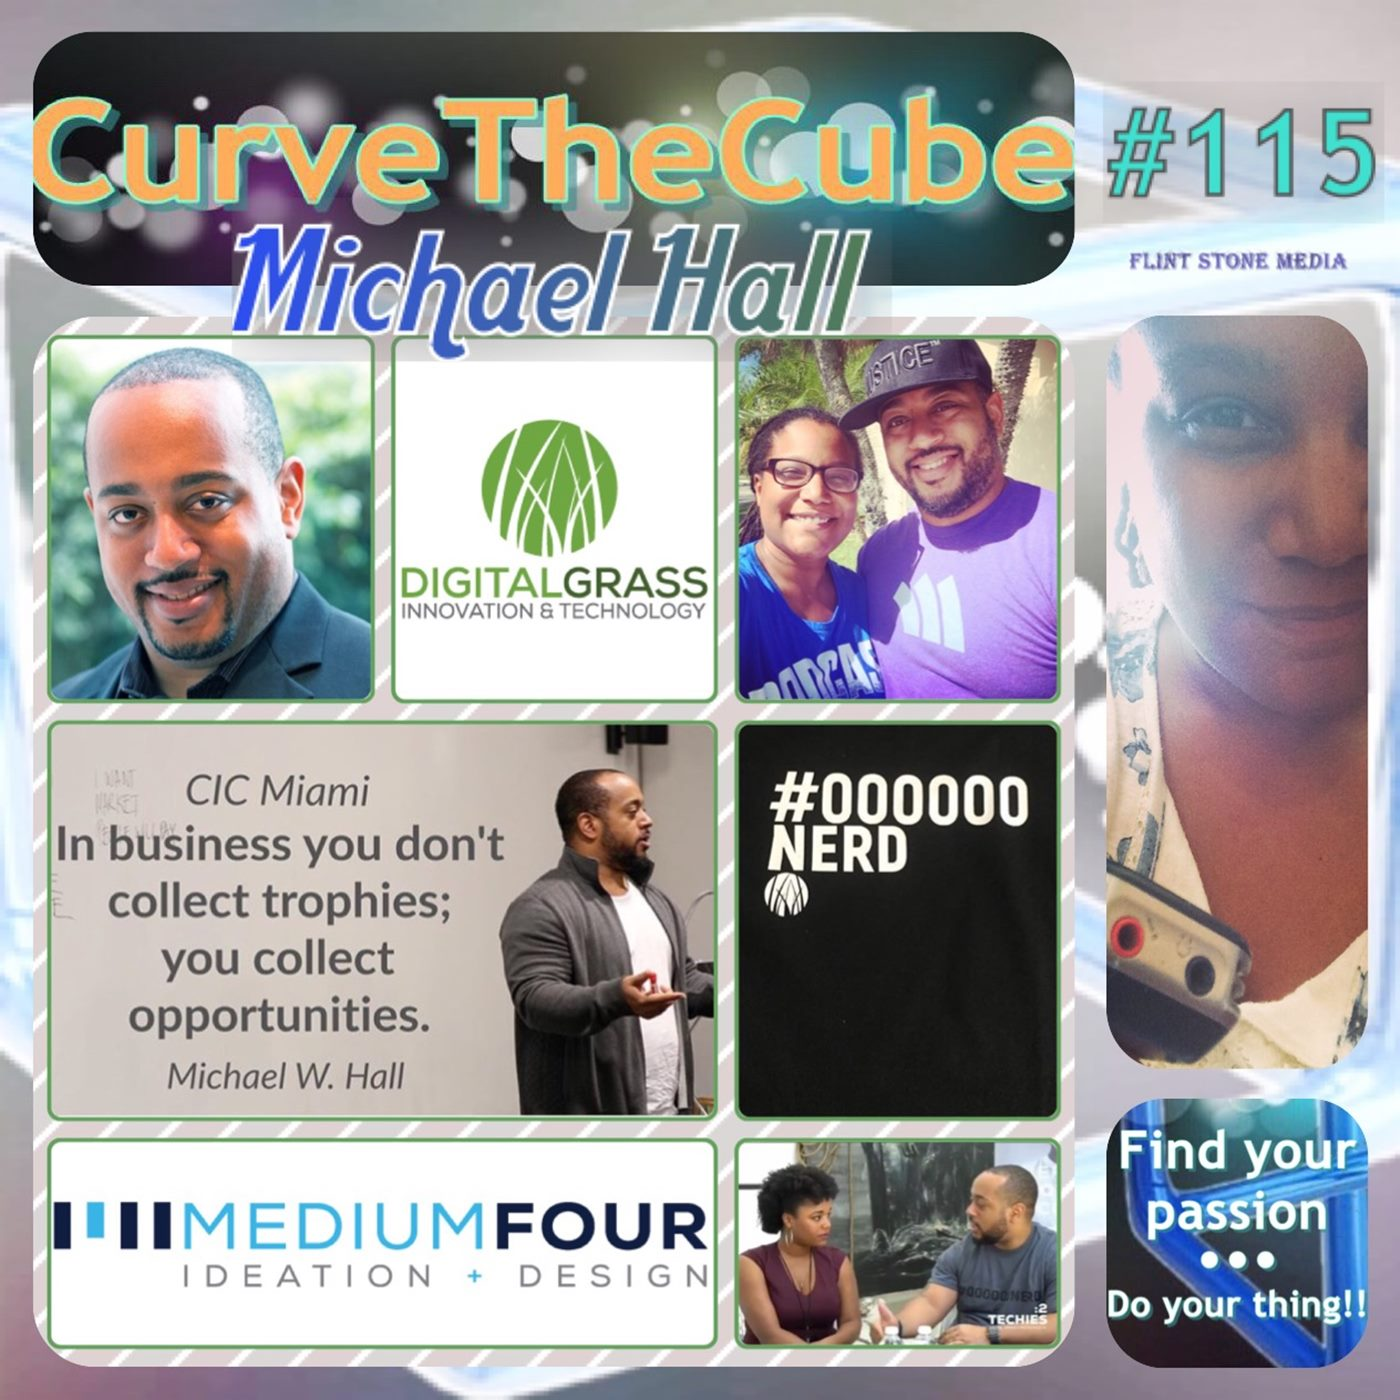 Michael Hall of Digital Grass and MediumFour on the Curve the Cube Podcast